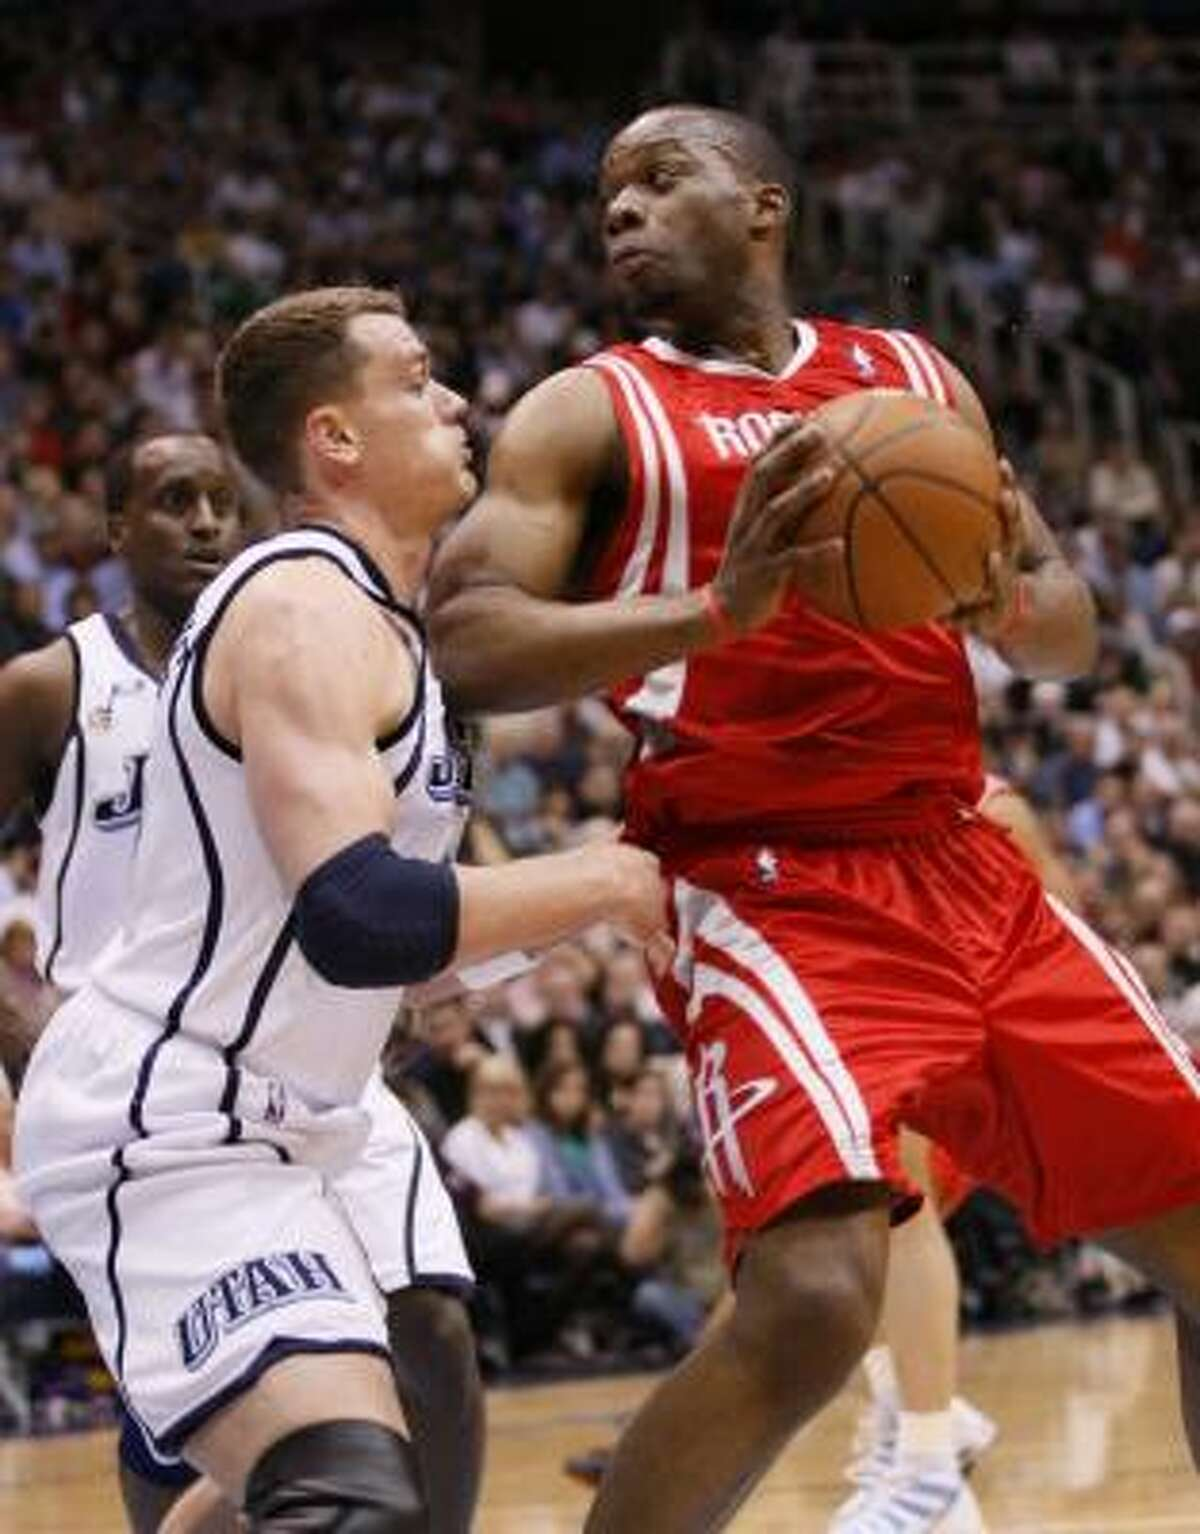 Carl Landry, right, who scored eight points, battles Jazz forward Matt Harpring for position in the second quarter.